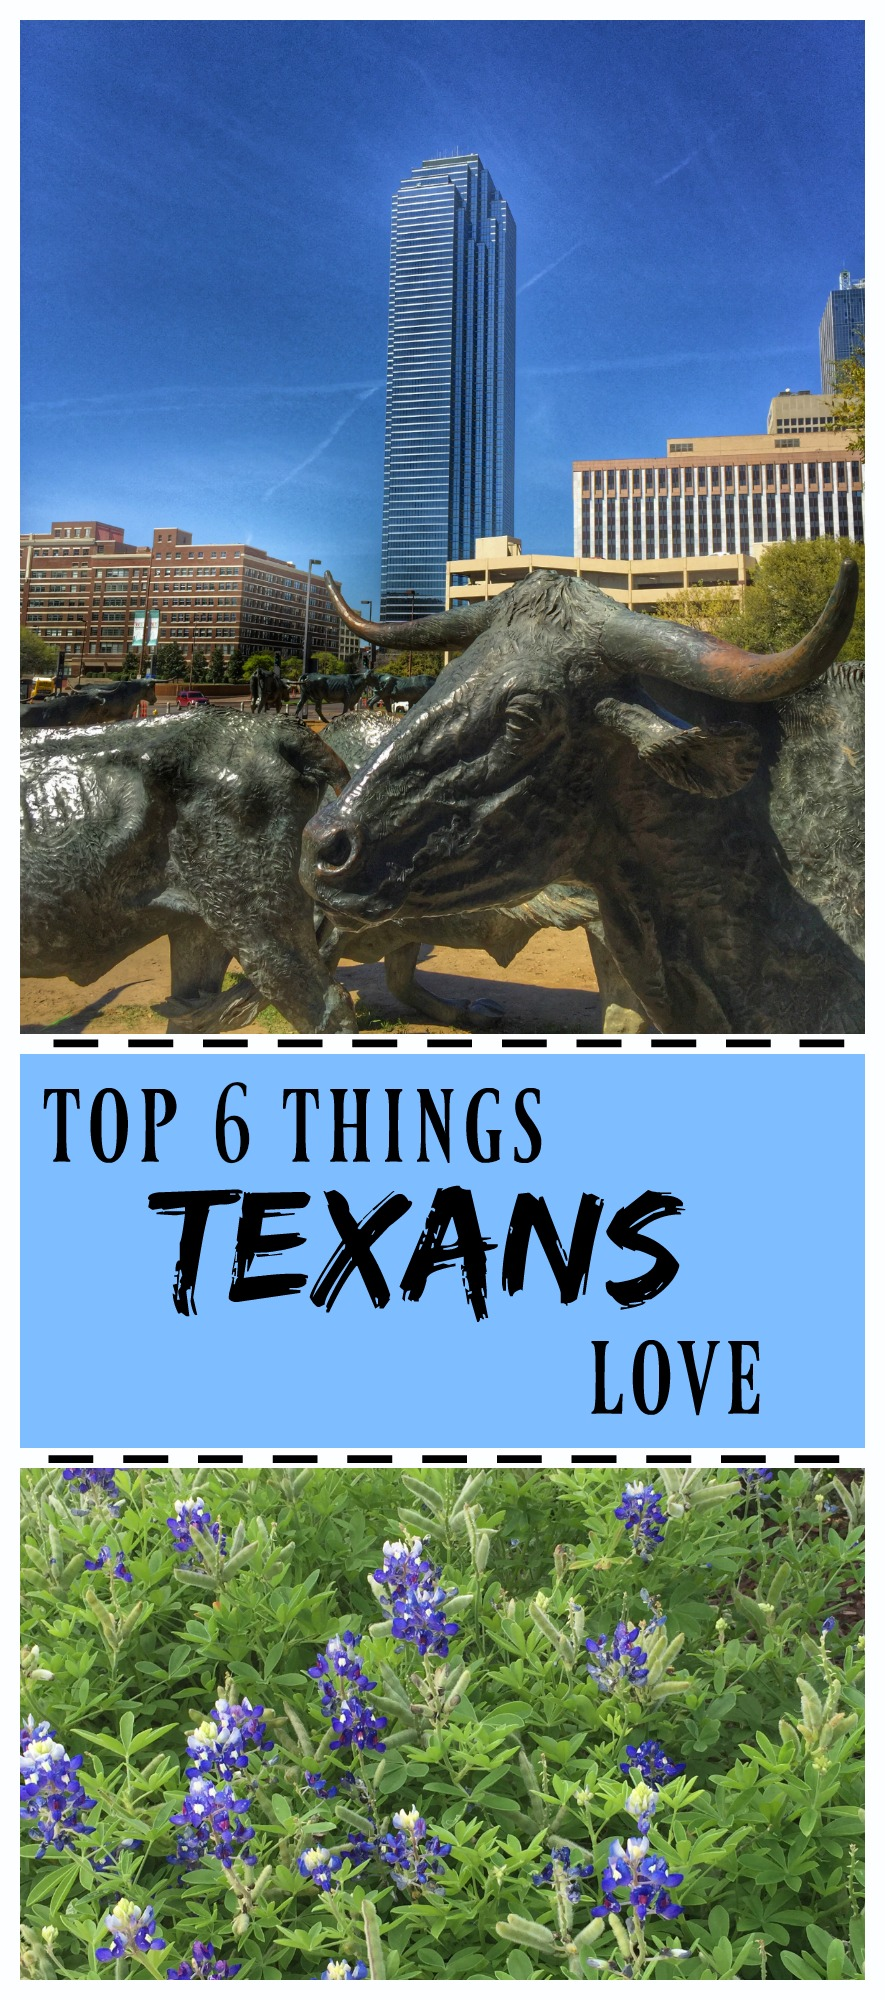 Top 6 Things Texans Love